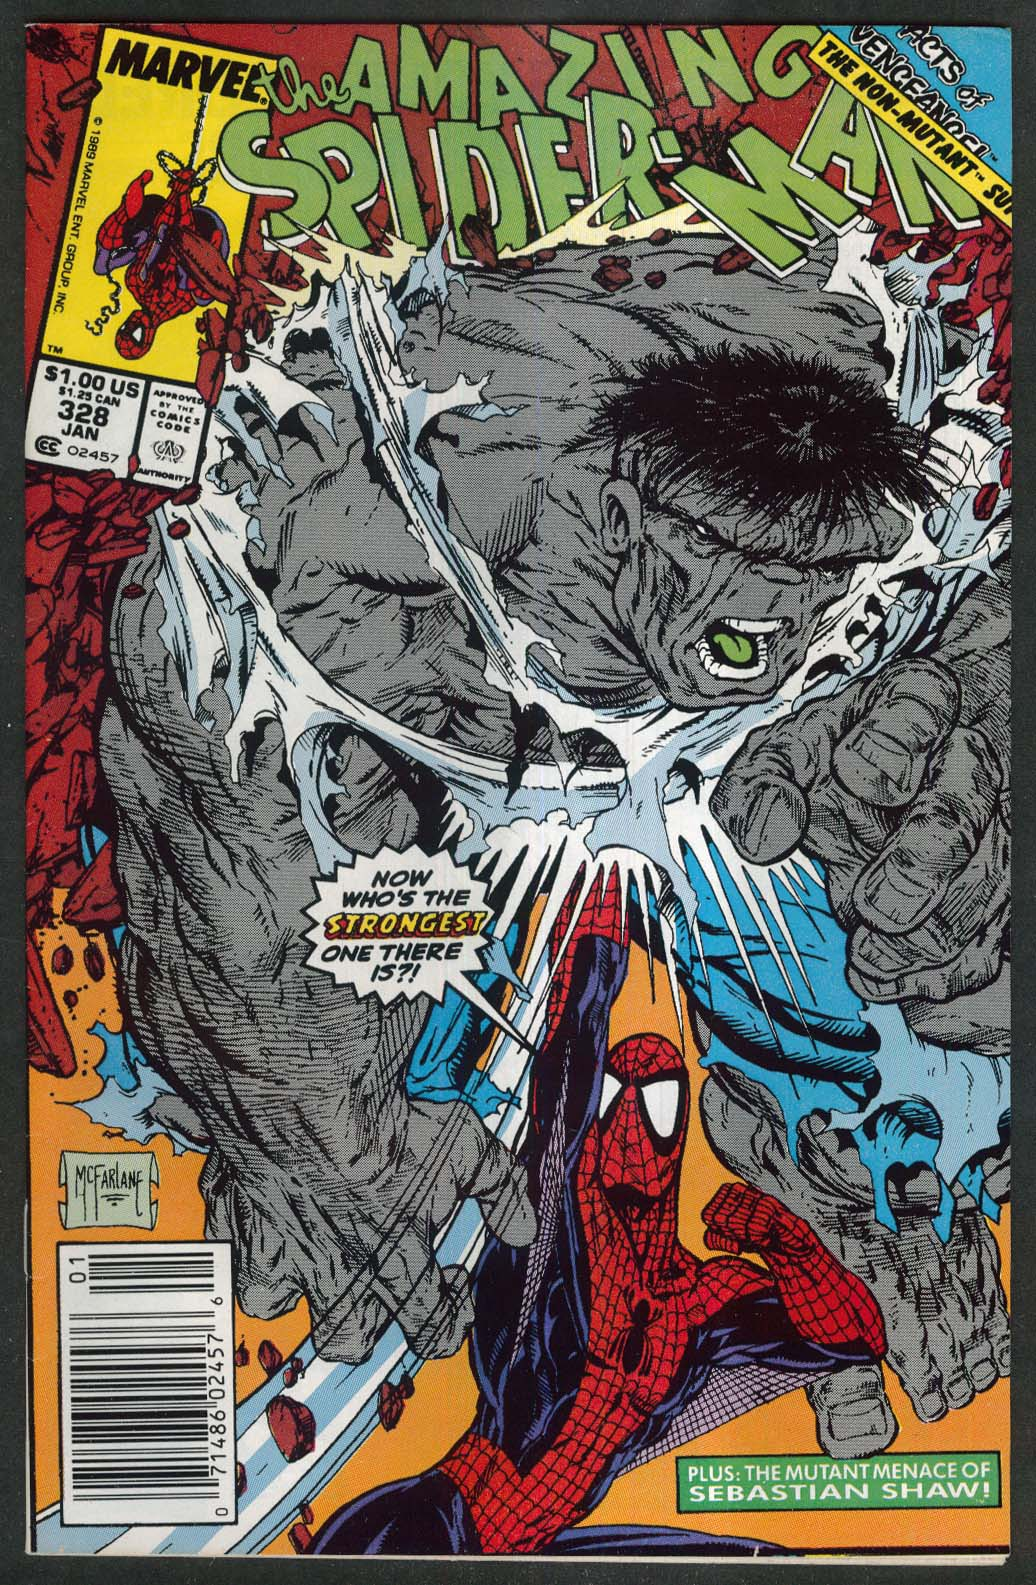 AMAZING SPIDER-MAN #328 Marvel comic book 1 1990 Hulk